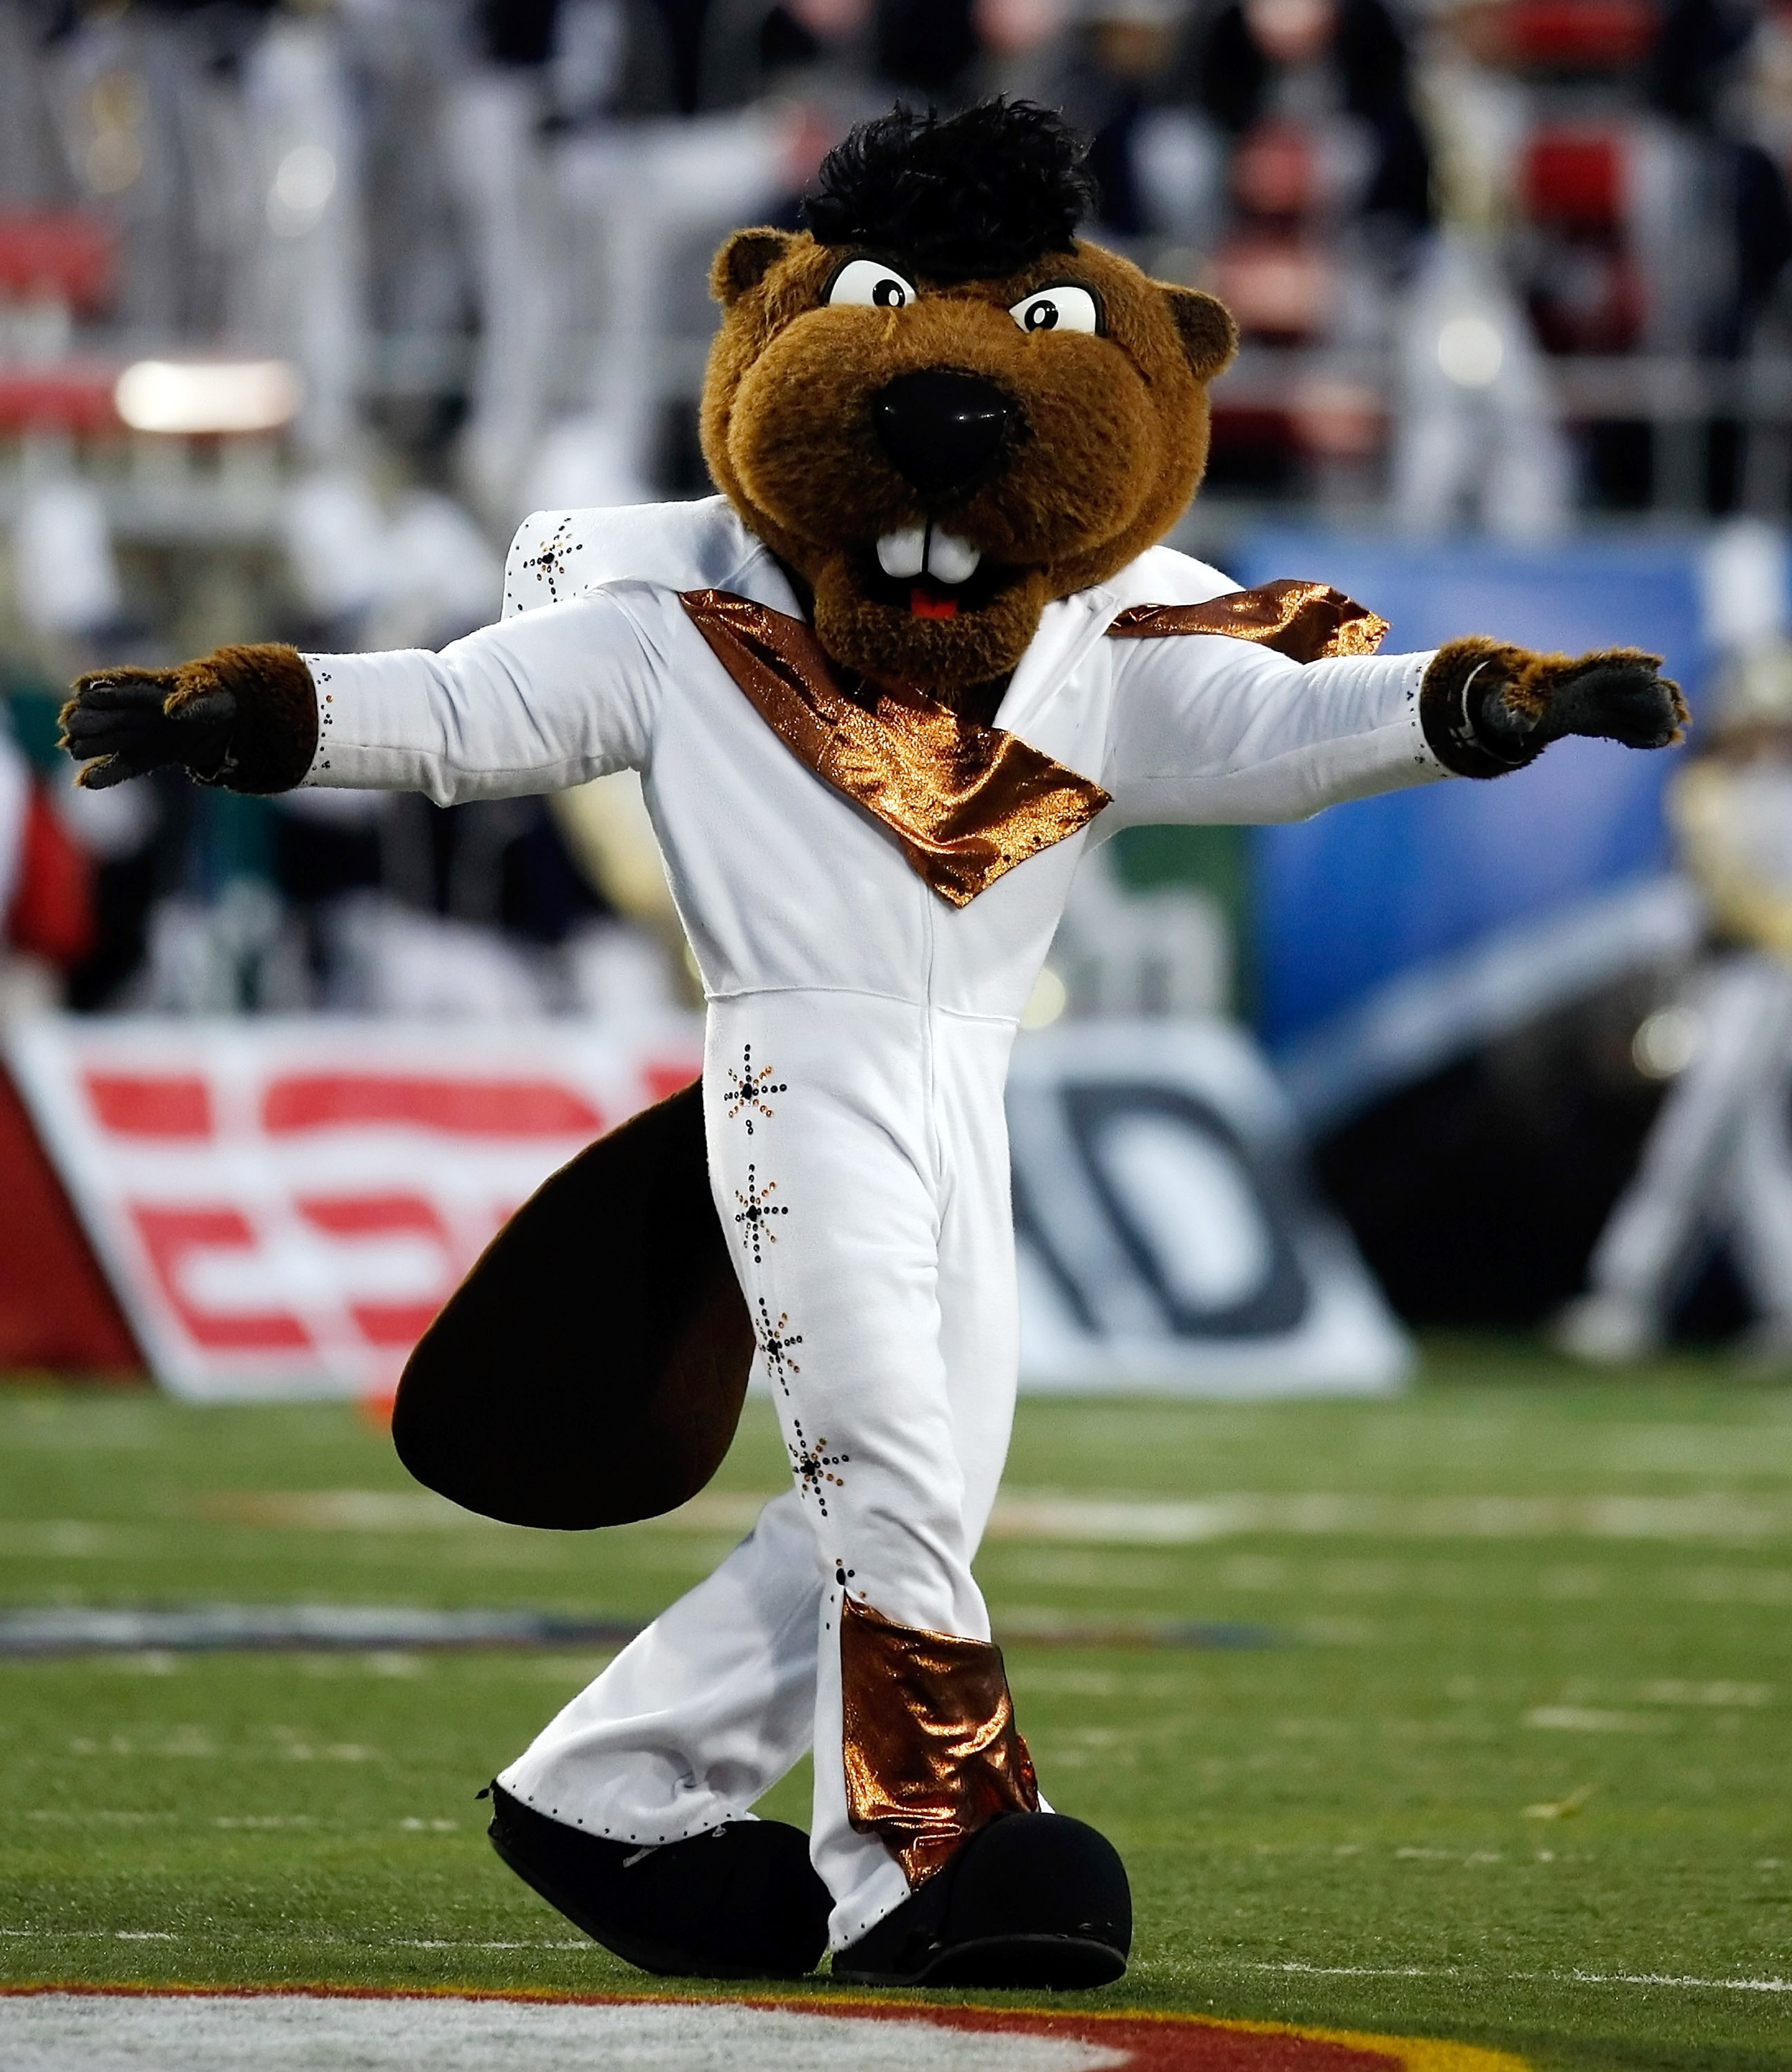 LAS VEGAS - DECEMBER 22:  Oregon State Beavers mascot Benny appears on the field in an Elvis Presley-inspired costume before the team's game against the Brigham Young University Cougars in the MAACO Las Vegas Bowl at Sam Boyd Stadium December 22, 2009 in